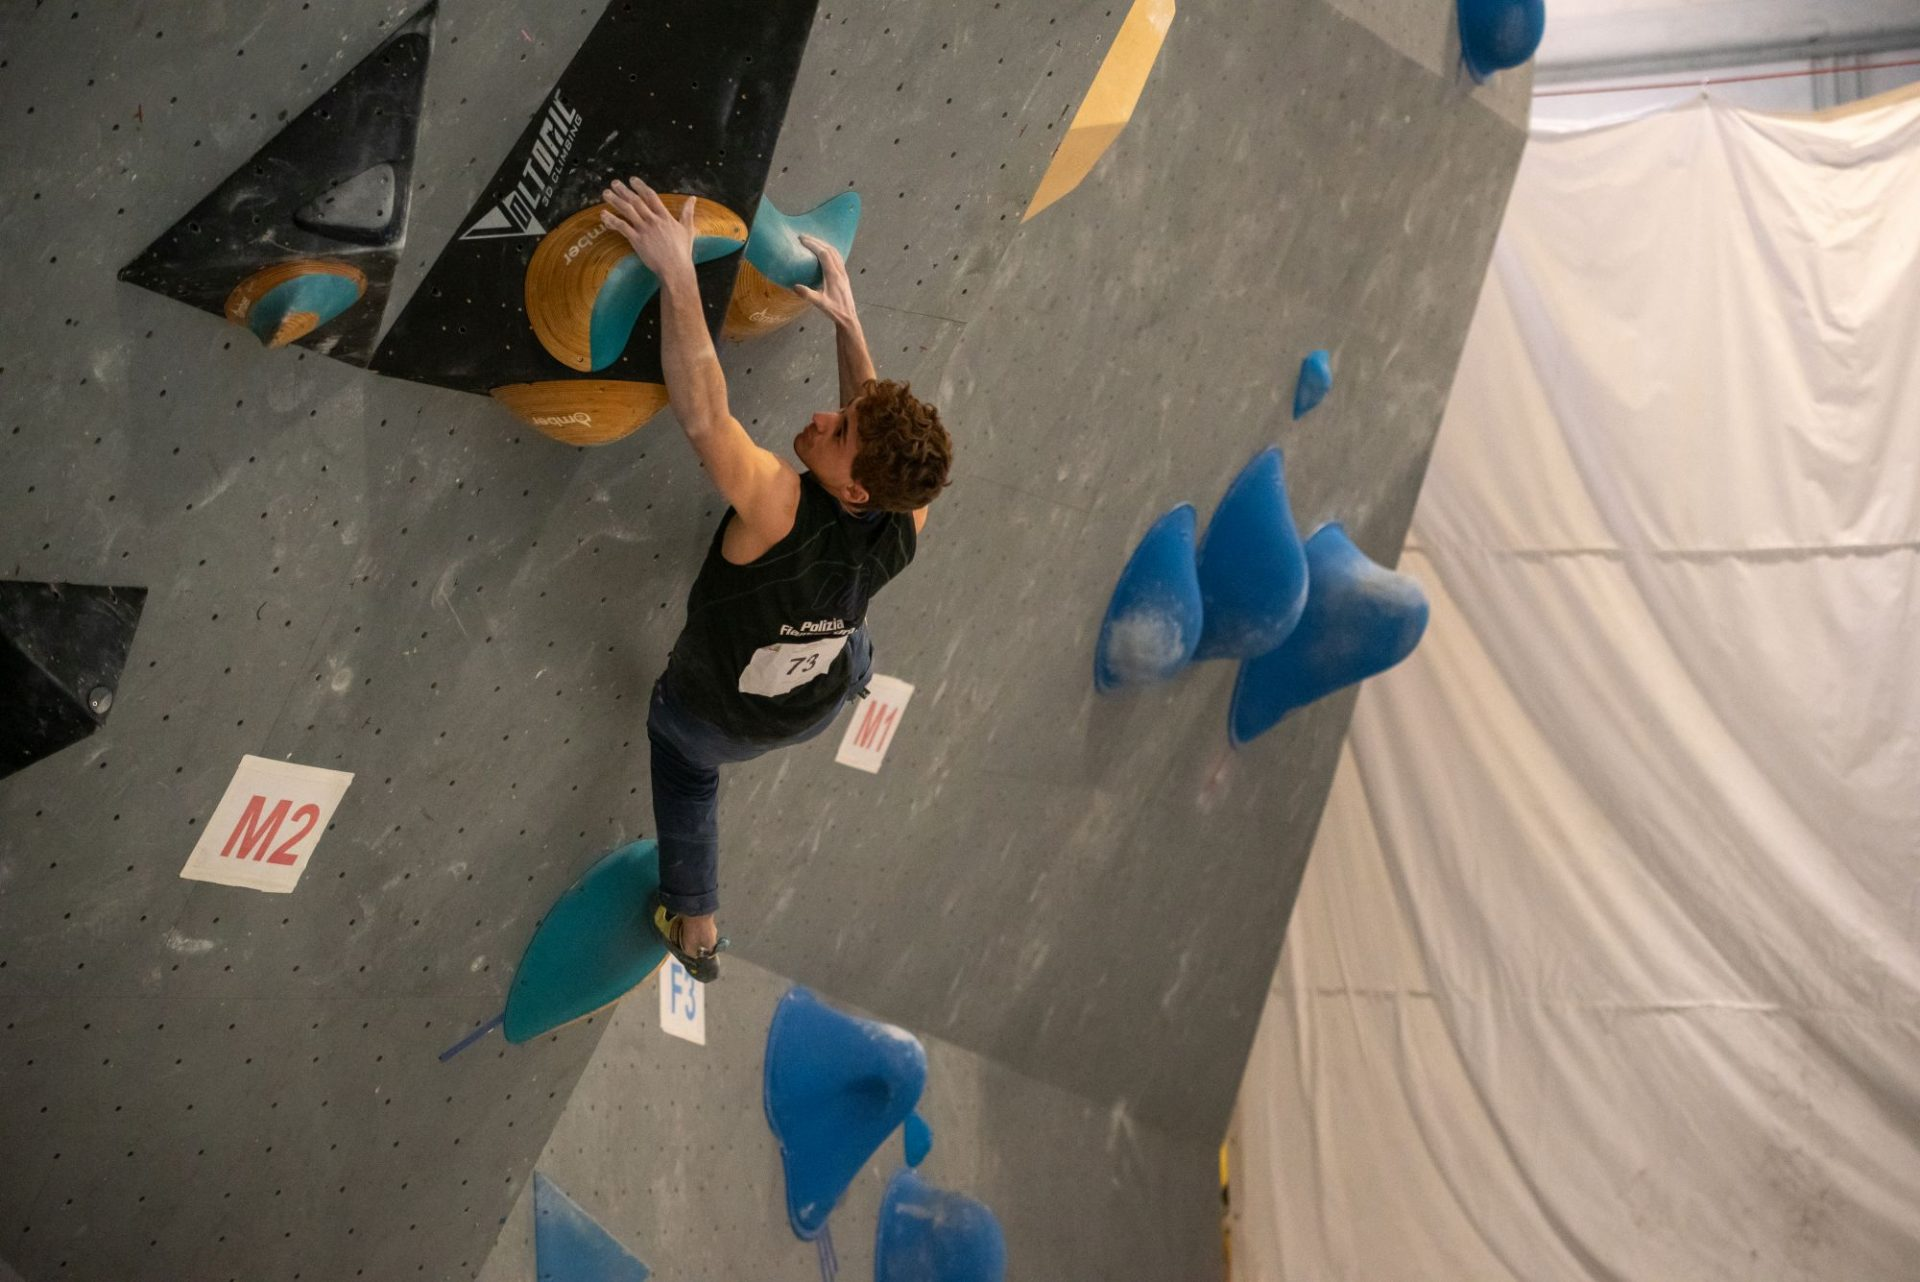 1. Italiencup Boulder 2021, Cuneo